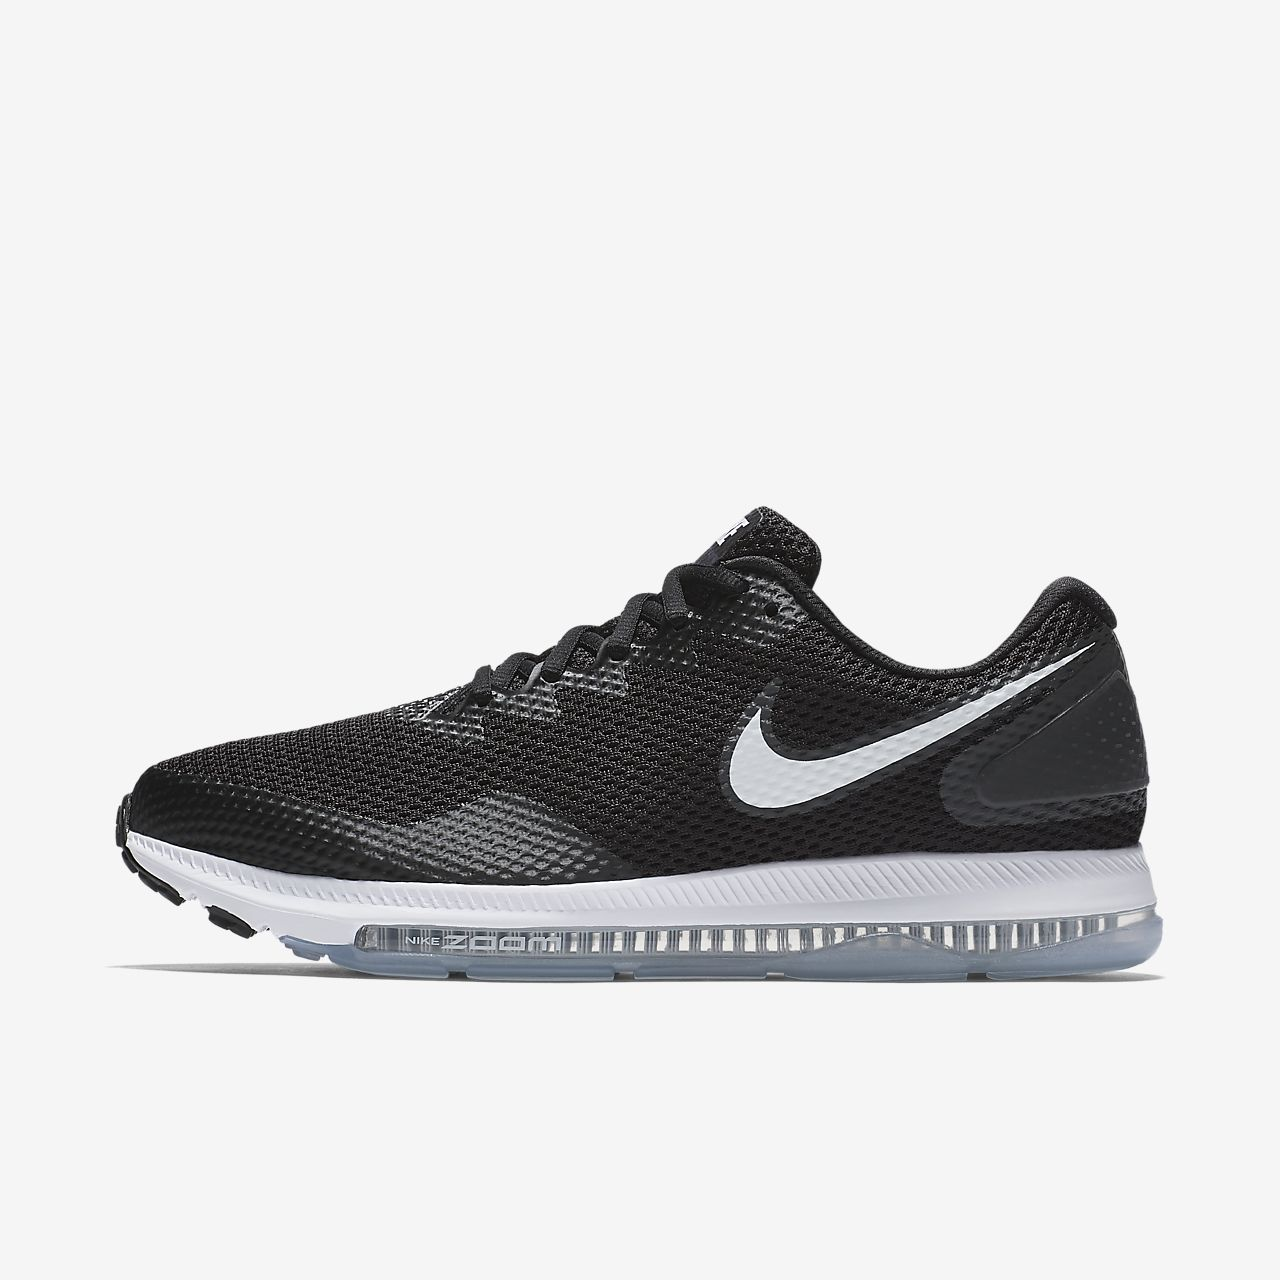 NIKE ZOOM ALL OUT LOW 2 BLACK cheap ANTHRACITE WHITE AJ0035-003 Mens